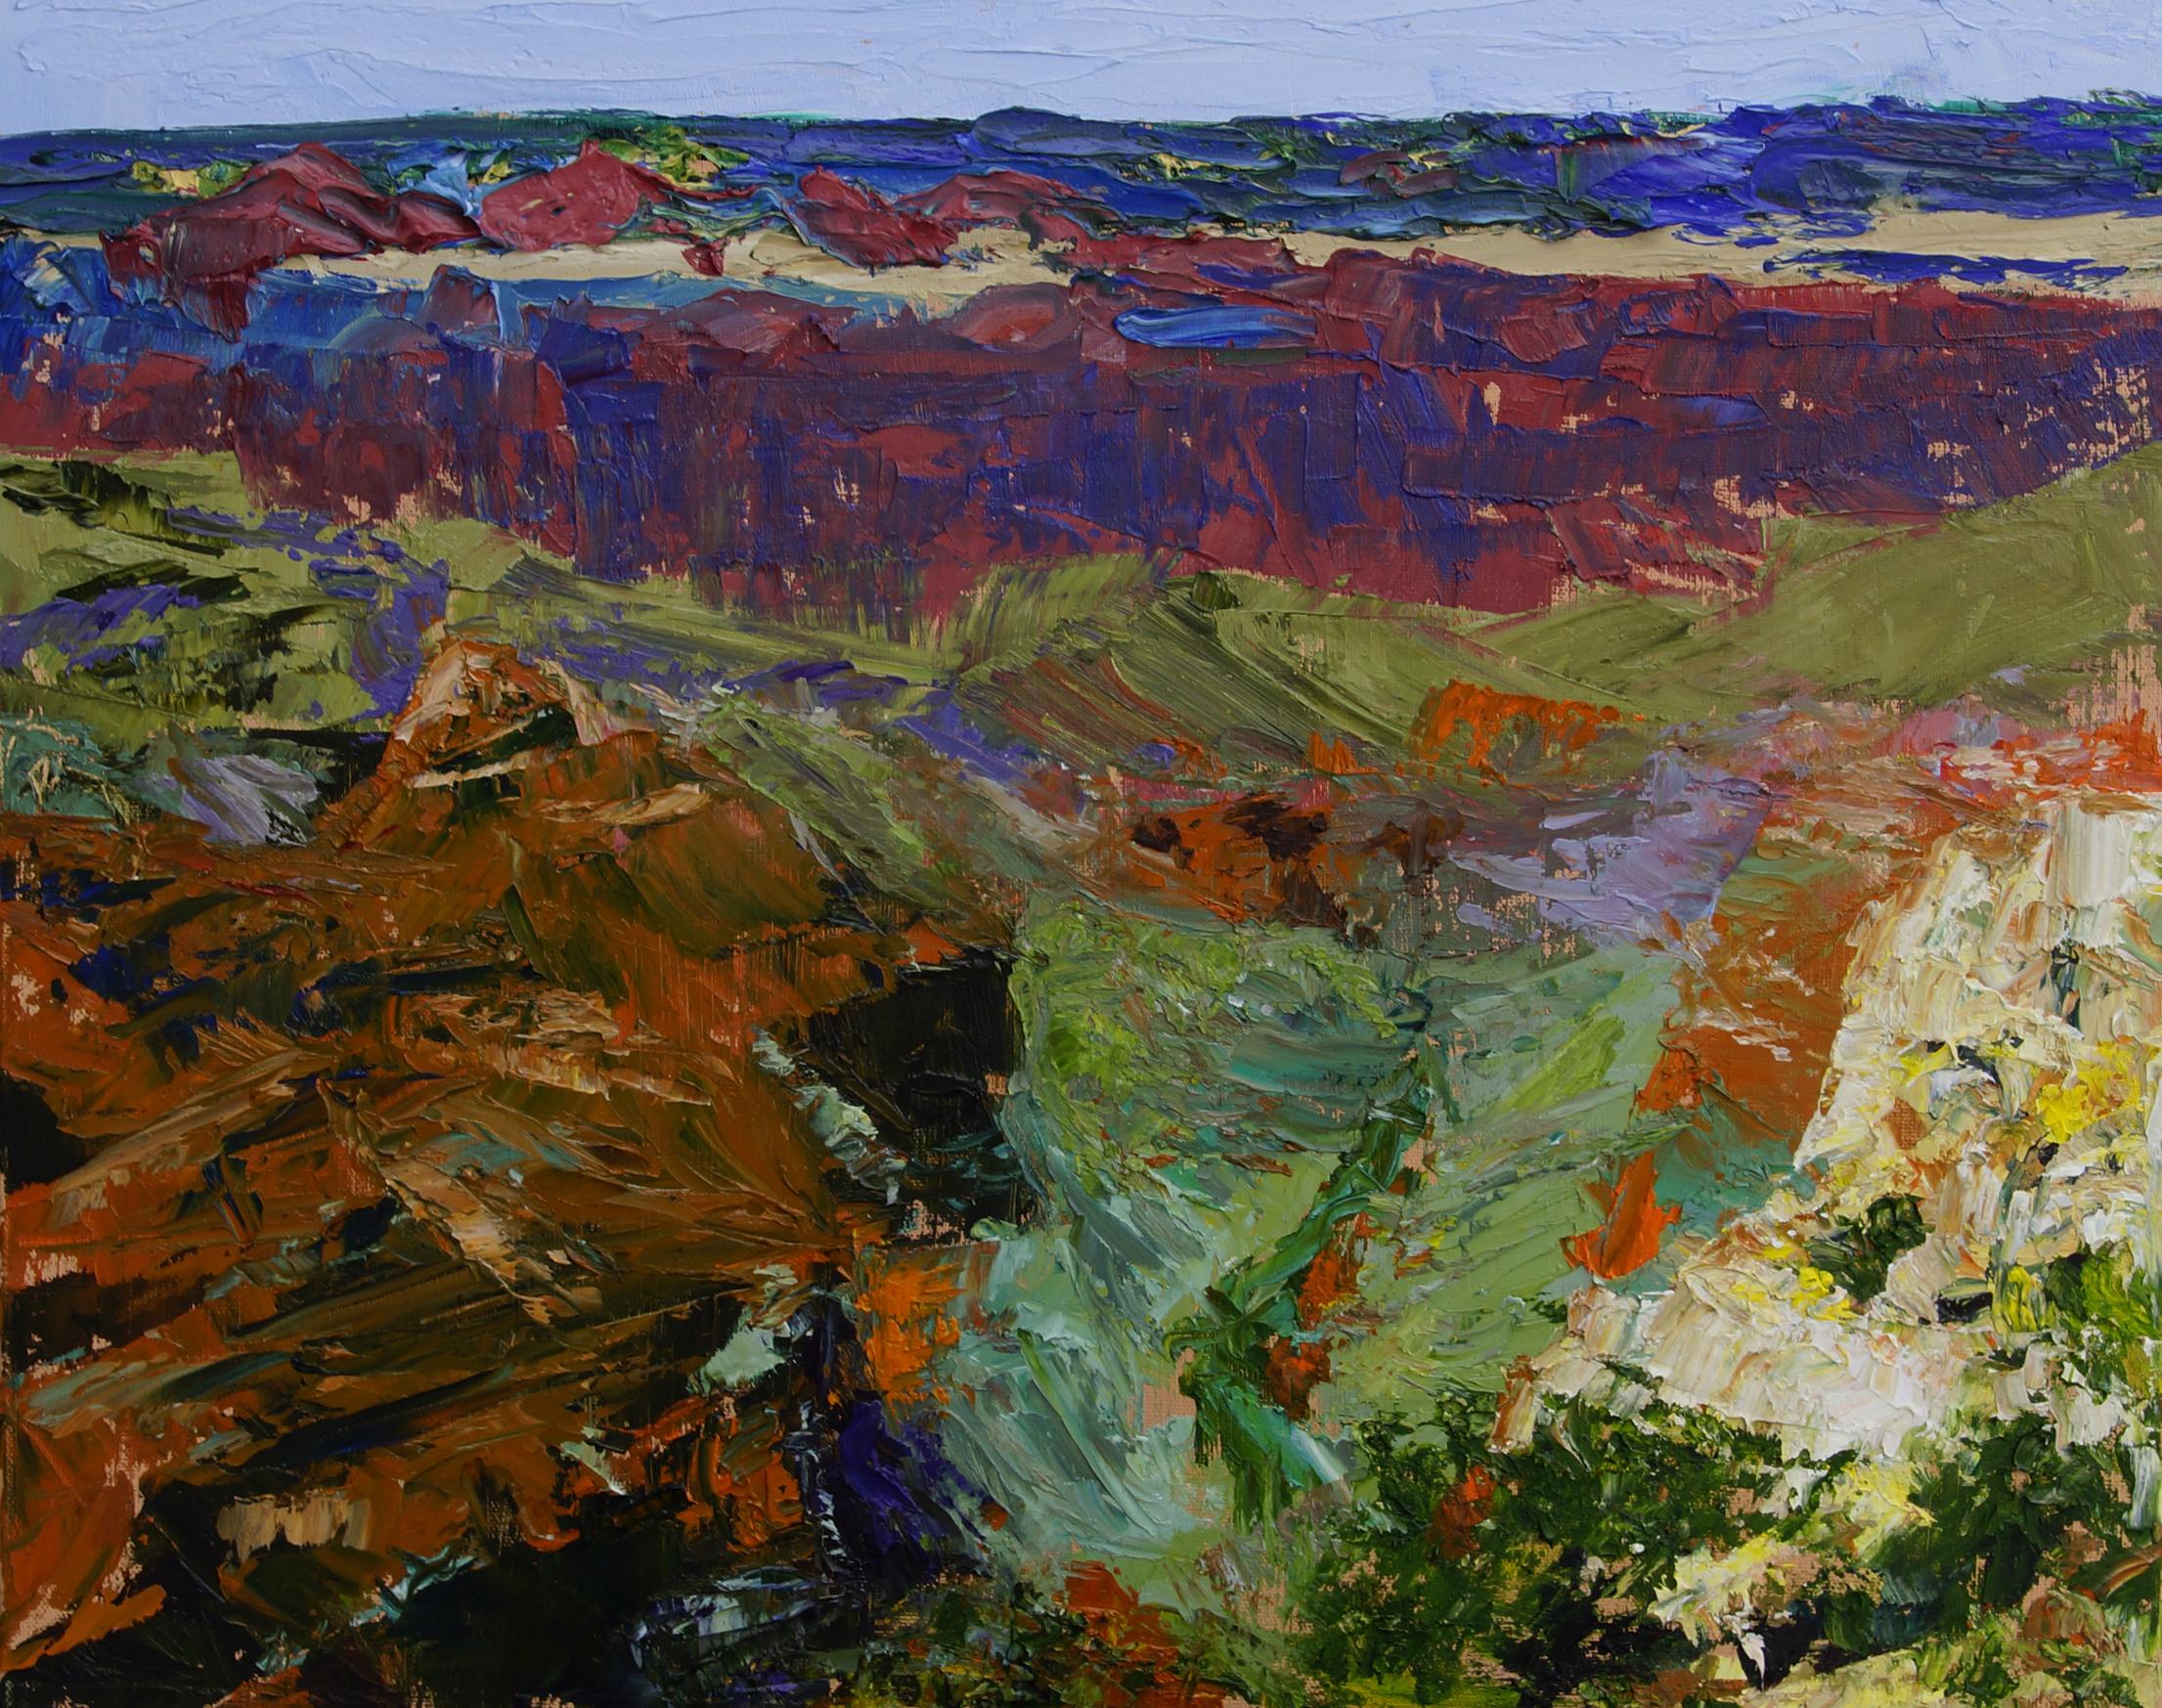 Grand Canyon artwork by Florine Duffield - art listed for sale on Artplode